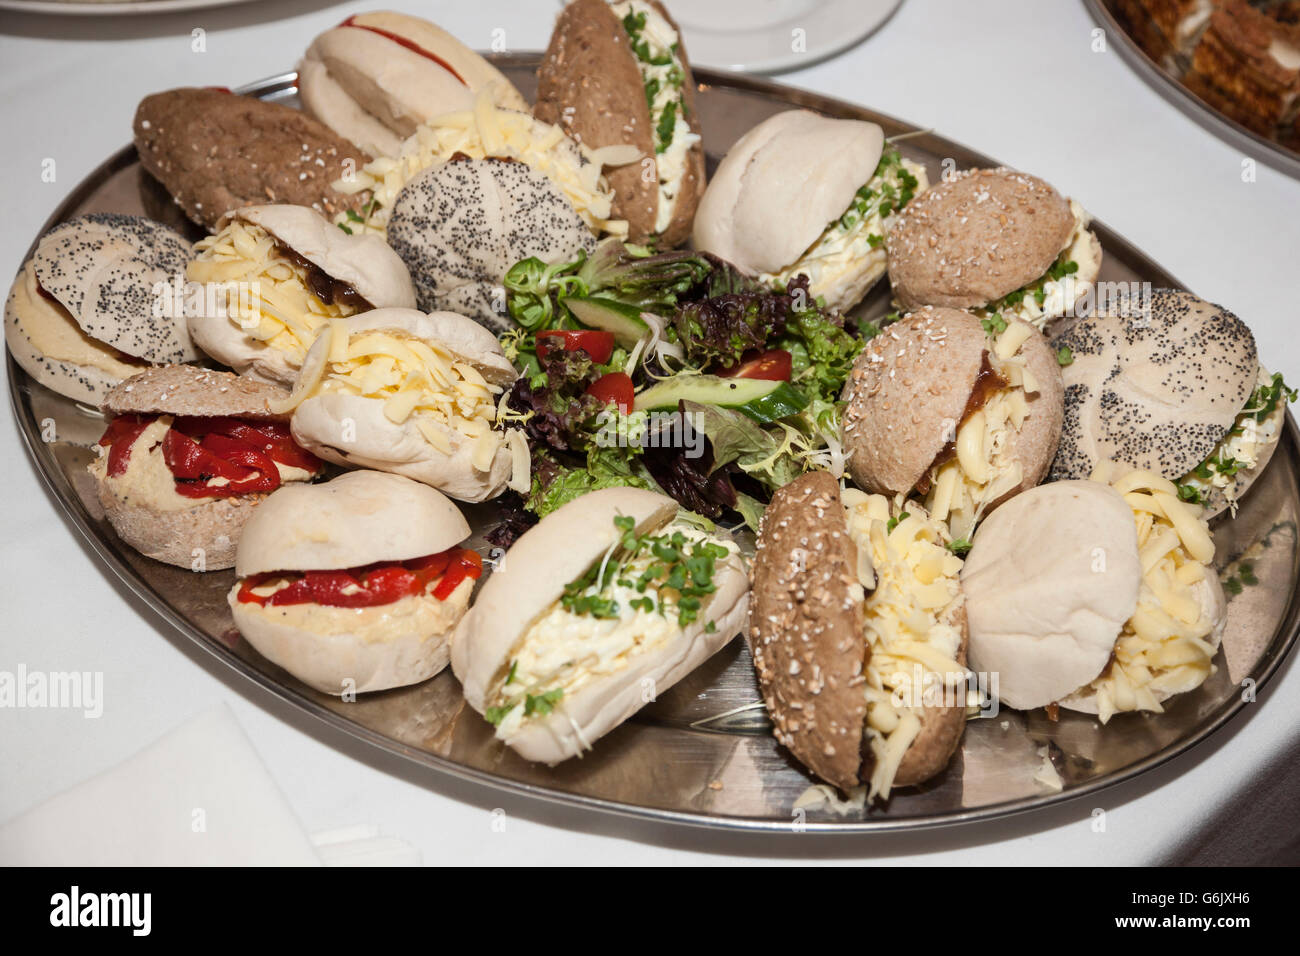 bread rolls with various fillings at a party - Stock Image